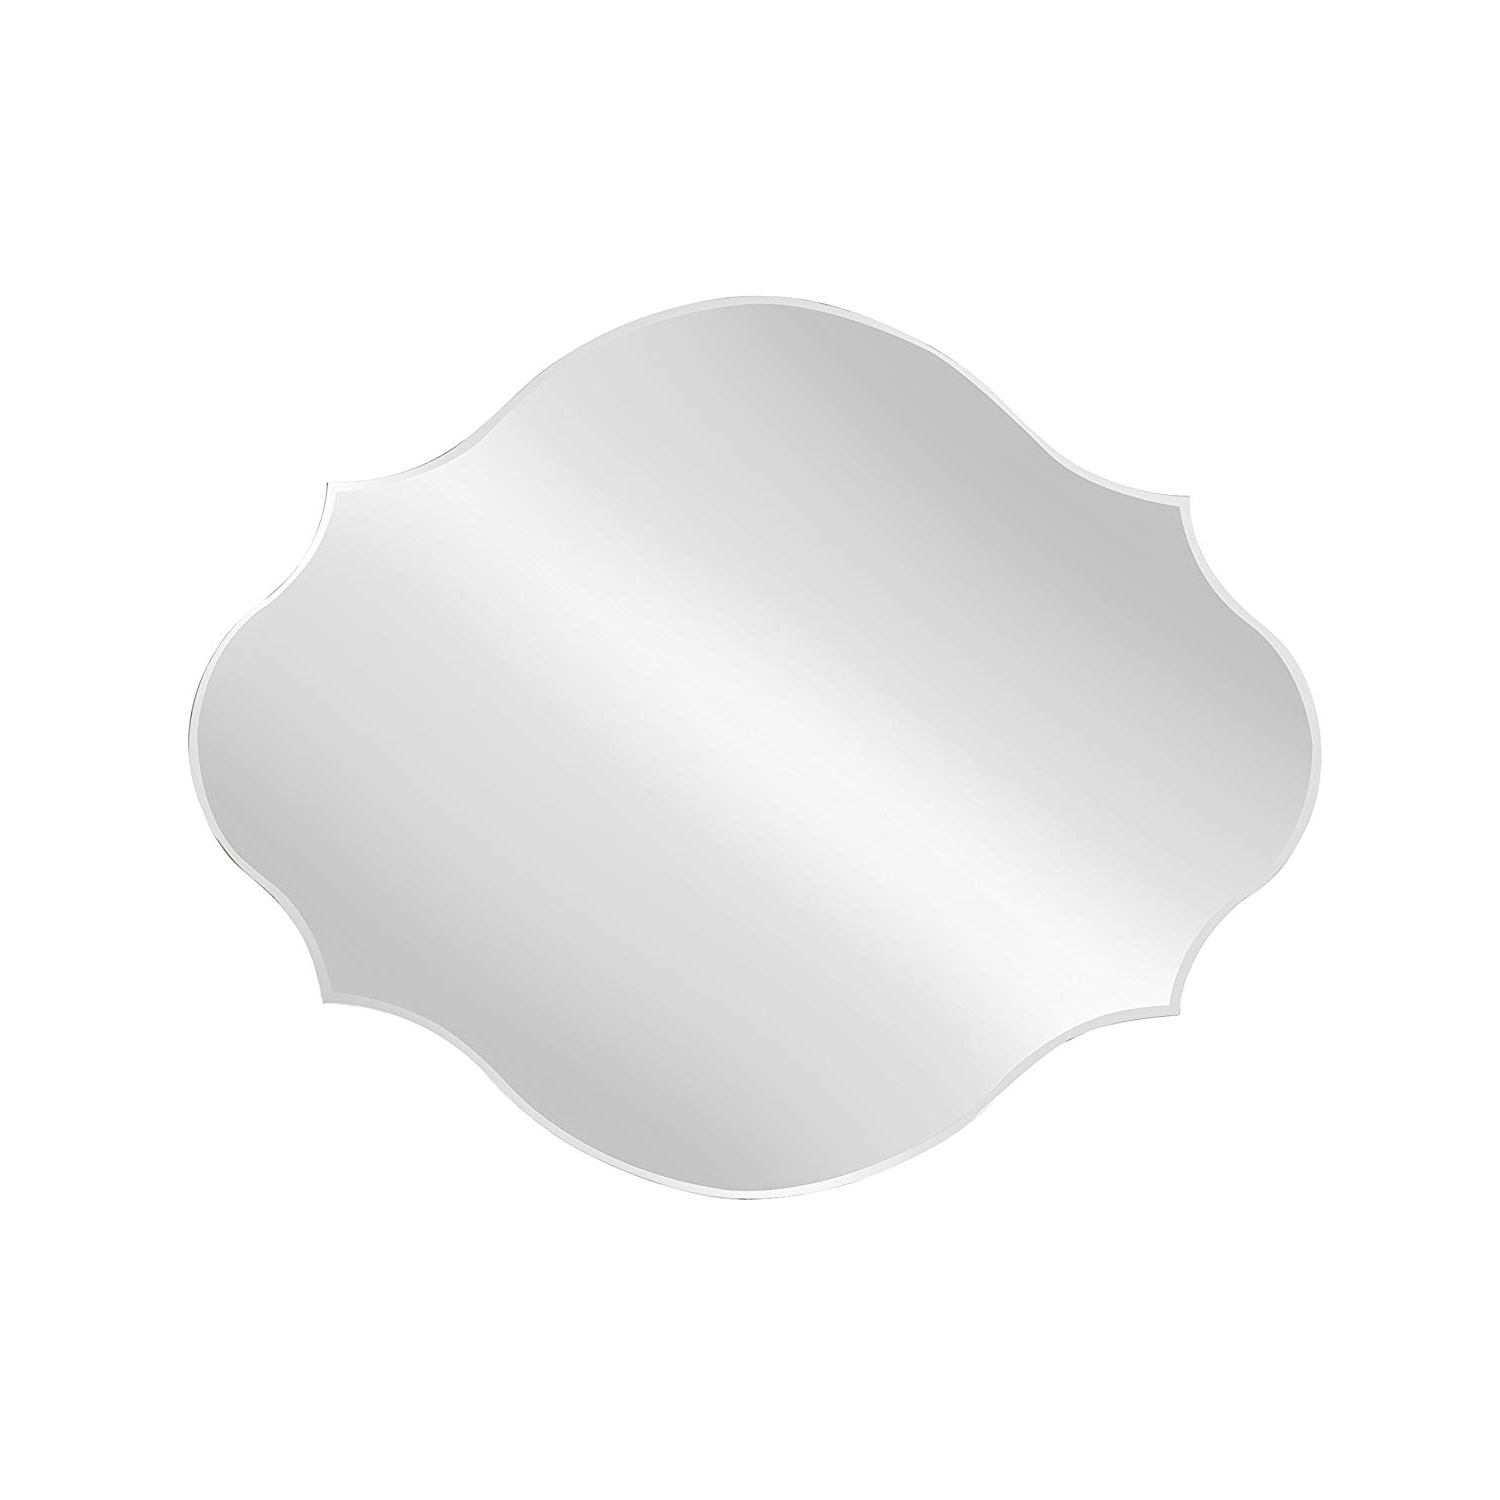 Designovation Reign Frameless Oval Scalloped Beveled Mirror, 16X20 Intended For Well Known Reign Frameless Oval Scalloped Beveled Wall Mirrors (View 4 of 20)